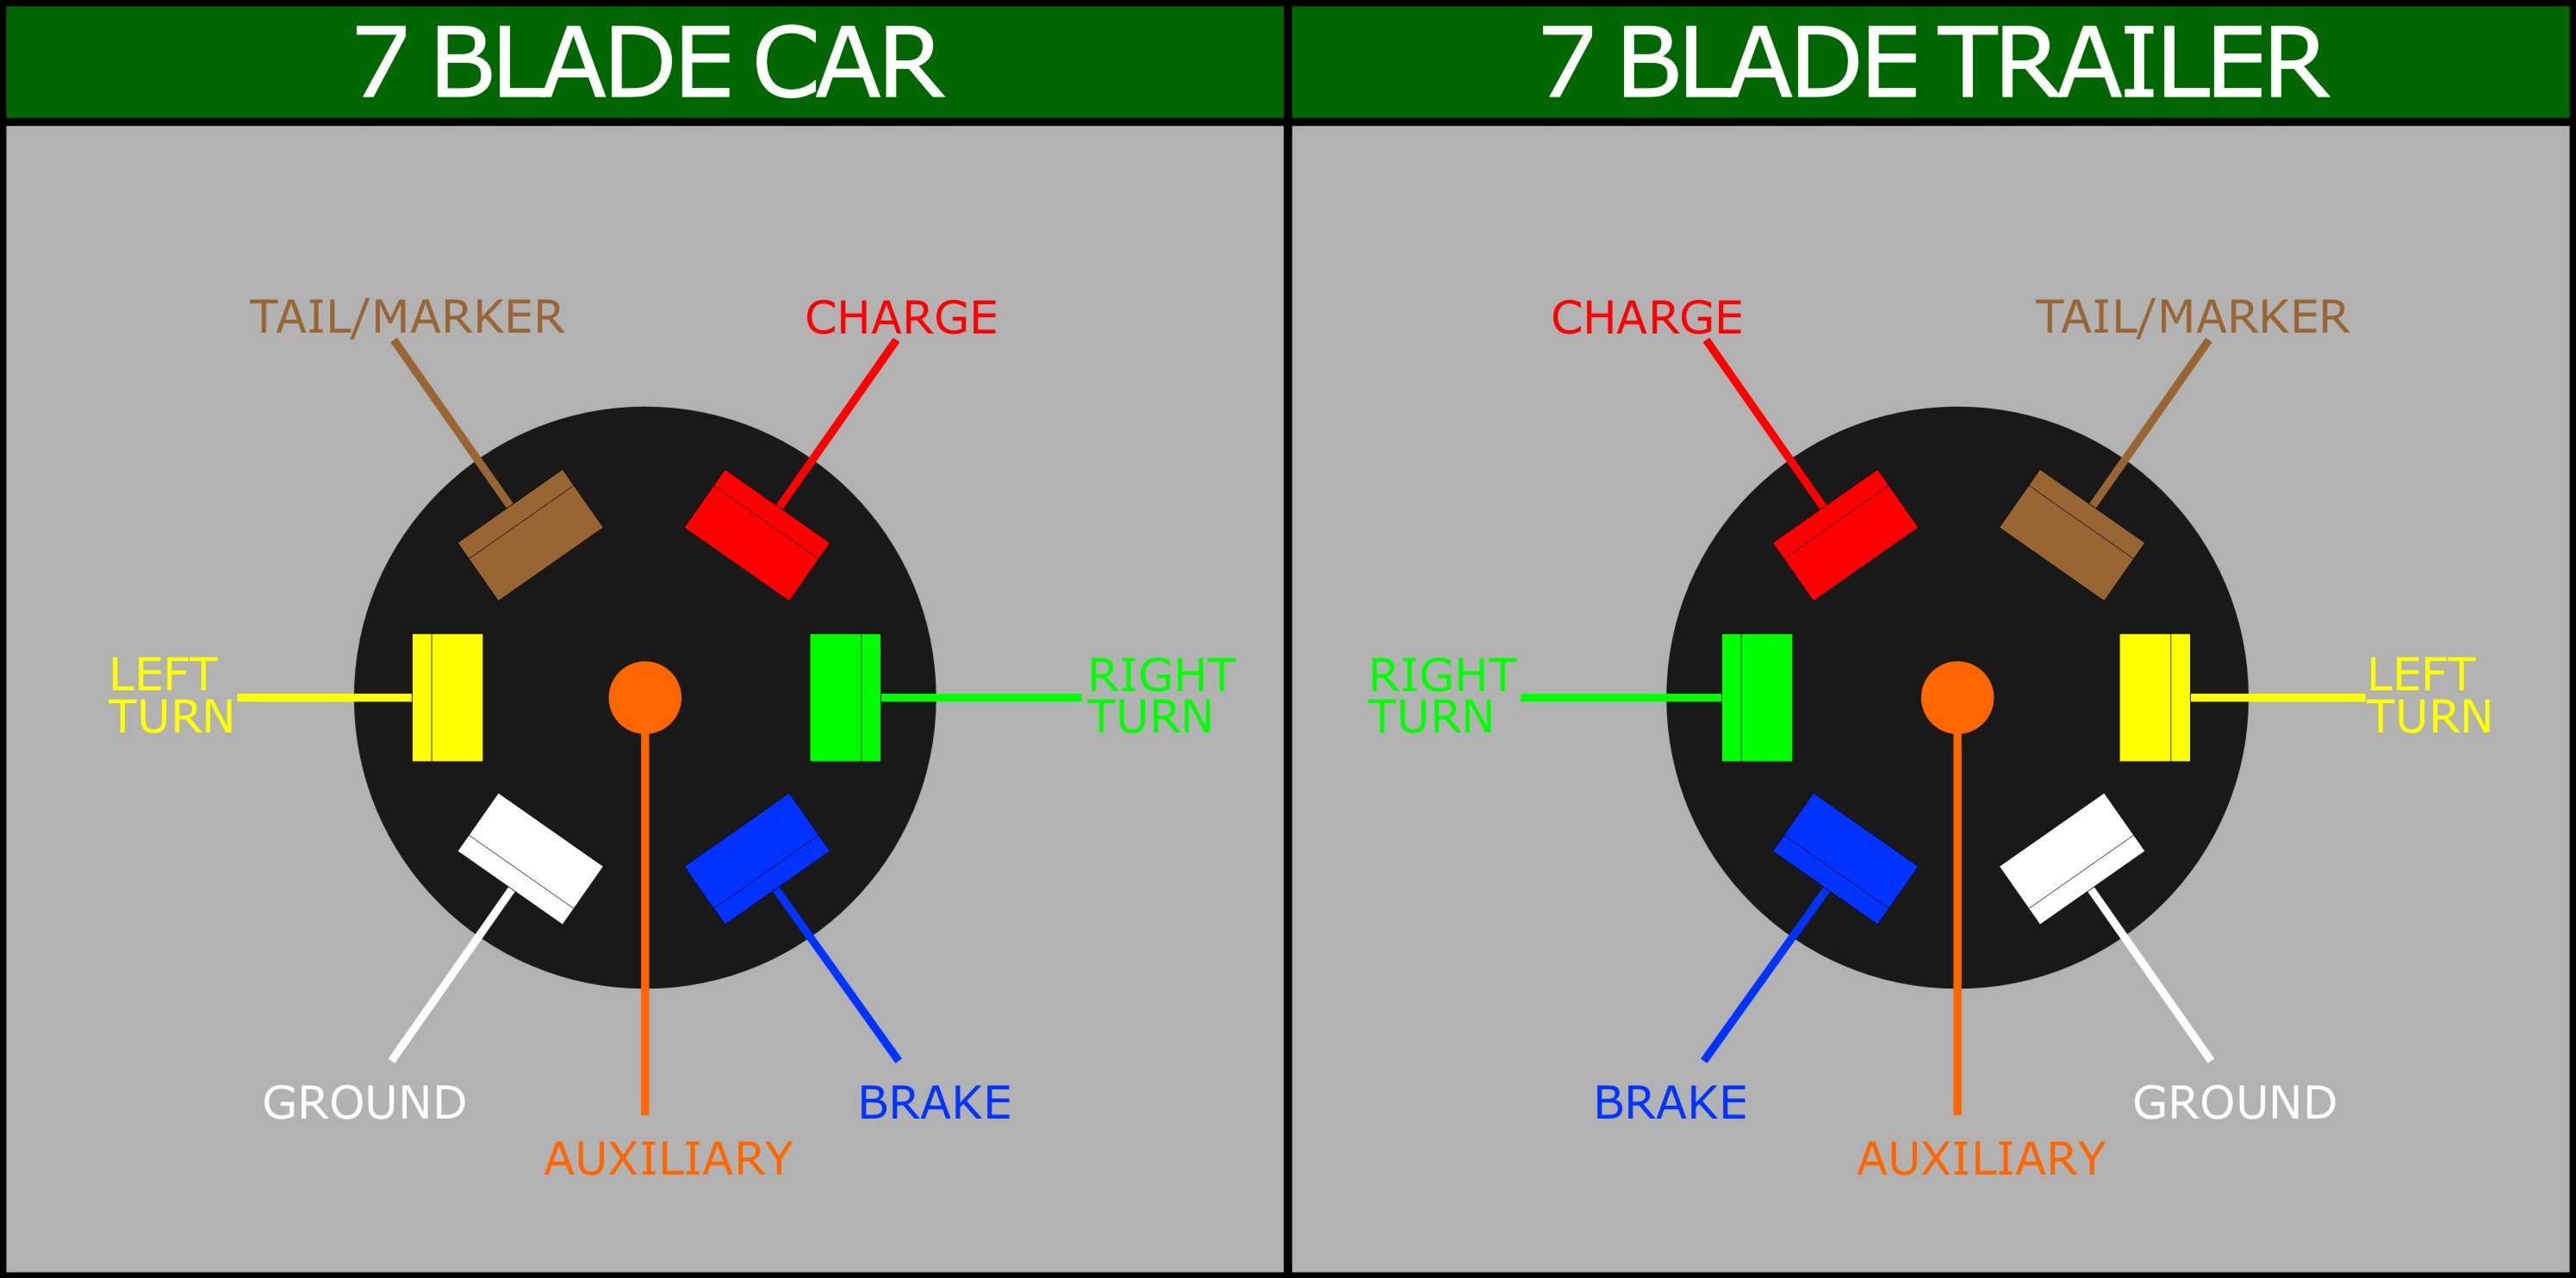 wiring a 7 blade trailer harness or plug, Wiring diagram